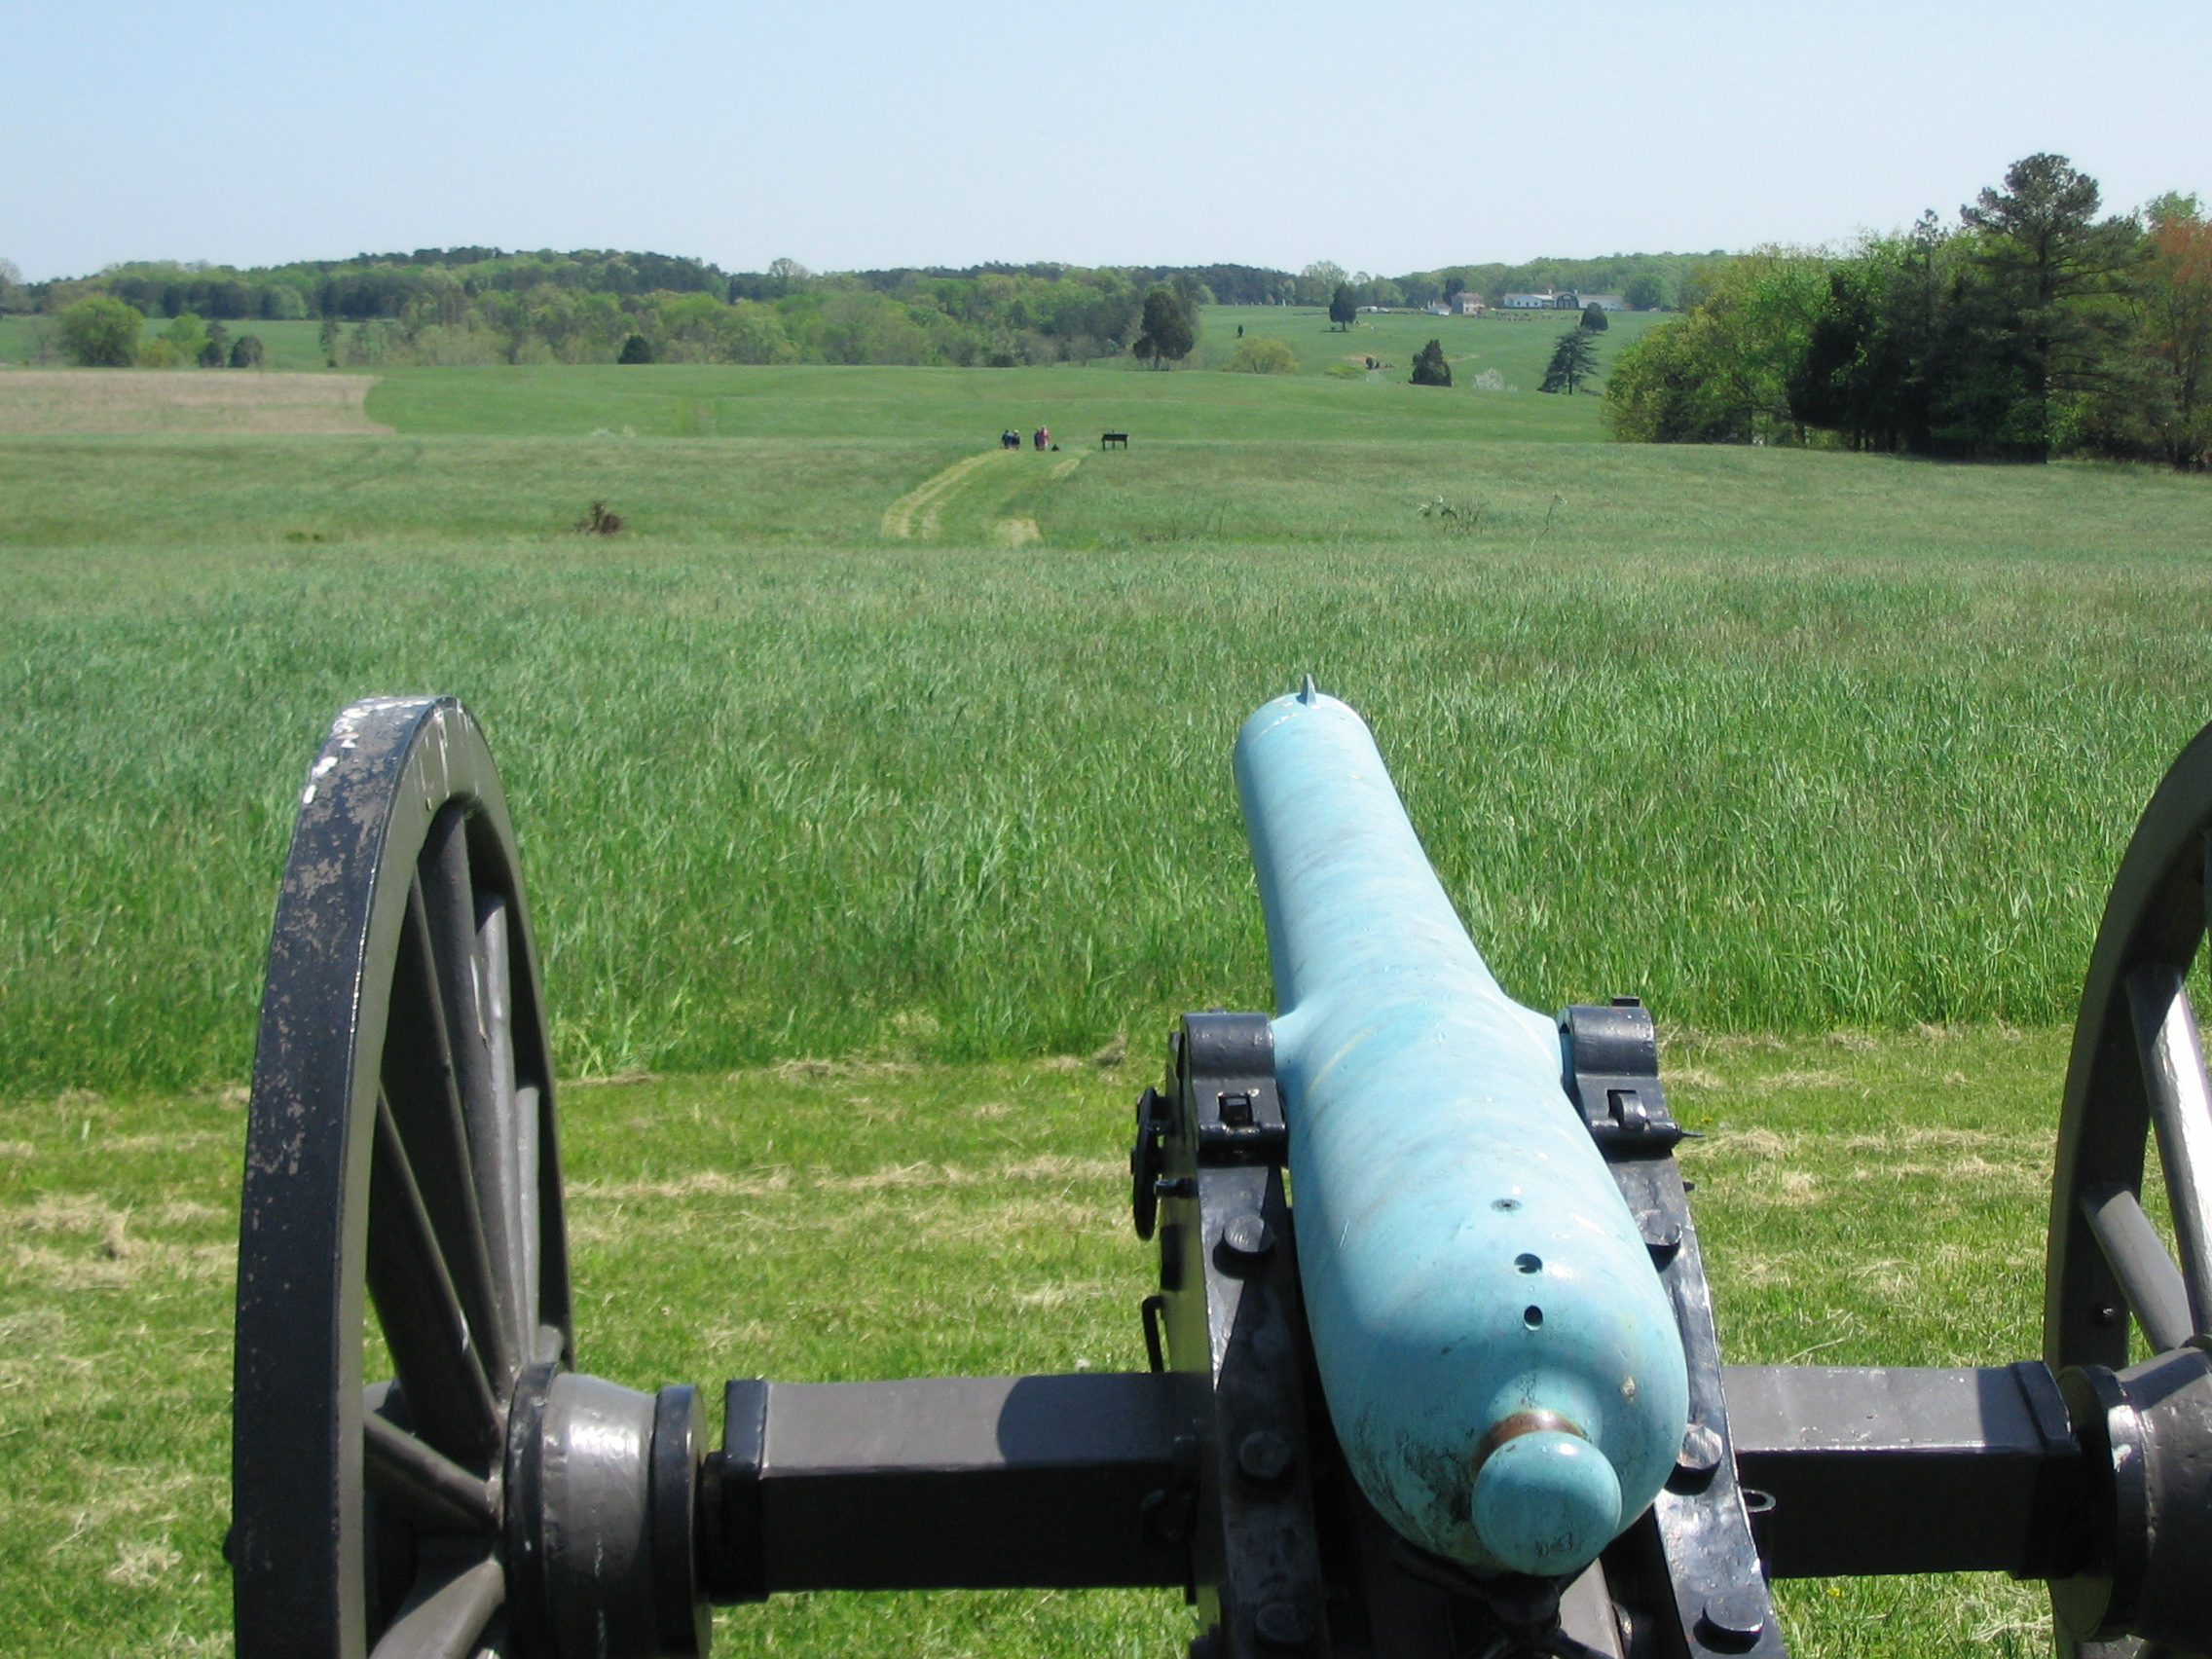 A view overlooking the battlefield